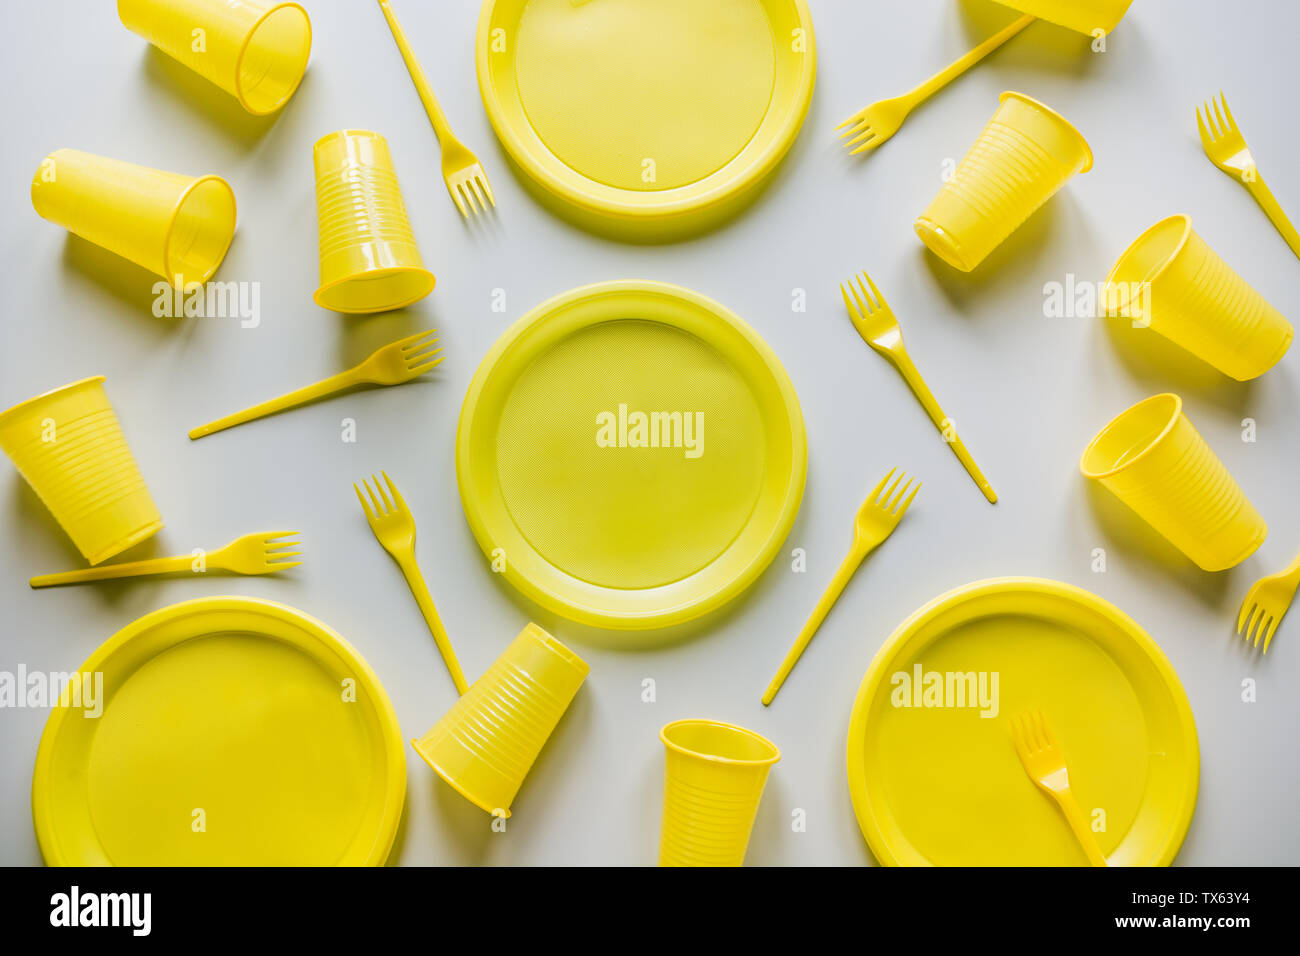 Single use yellow picnic utensils on grey. Environment, eco friendly, discarded, plastic garbage for recycle concept.Top view. Flat lay. Pattern. Stock Photo